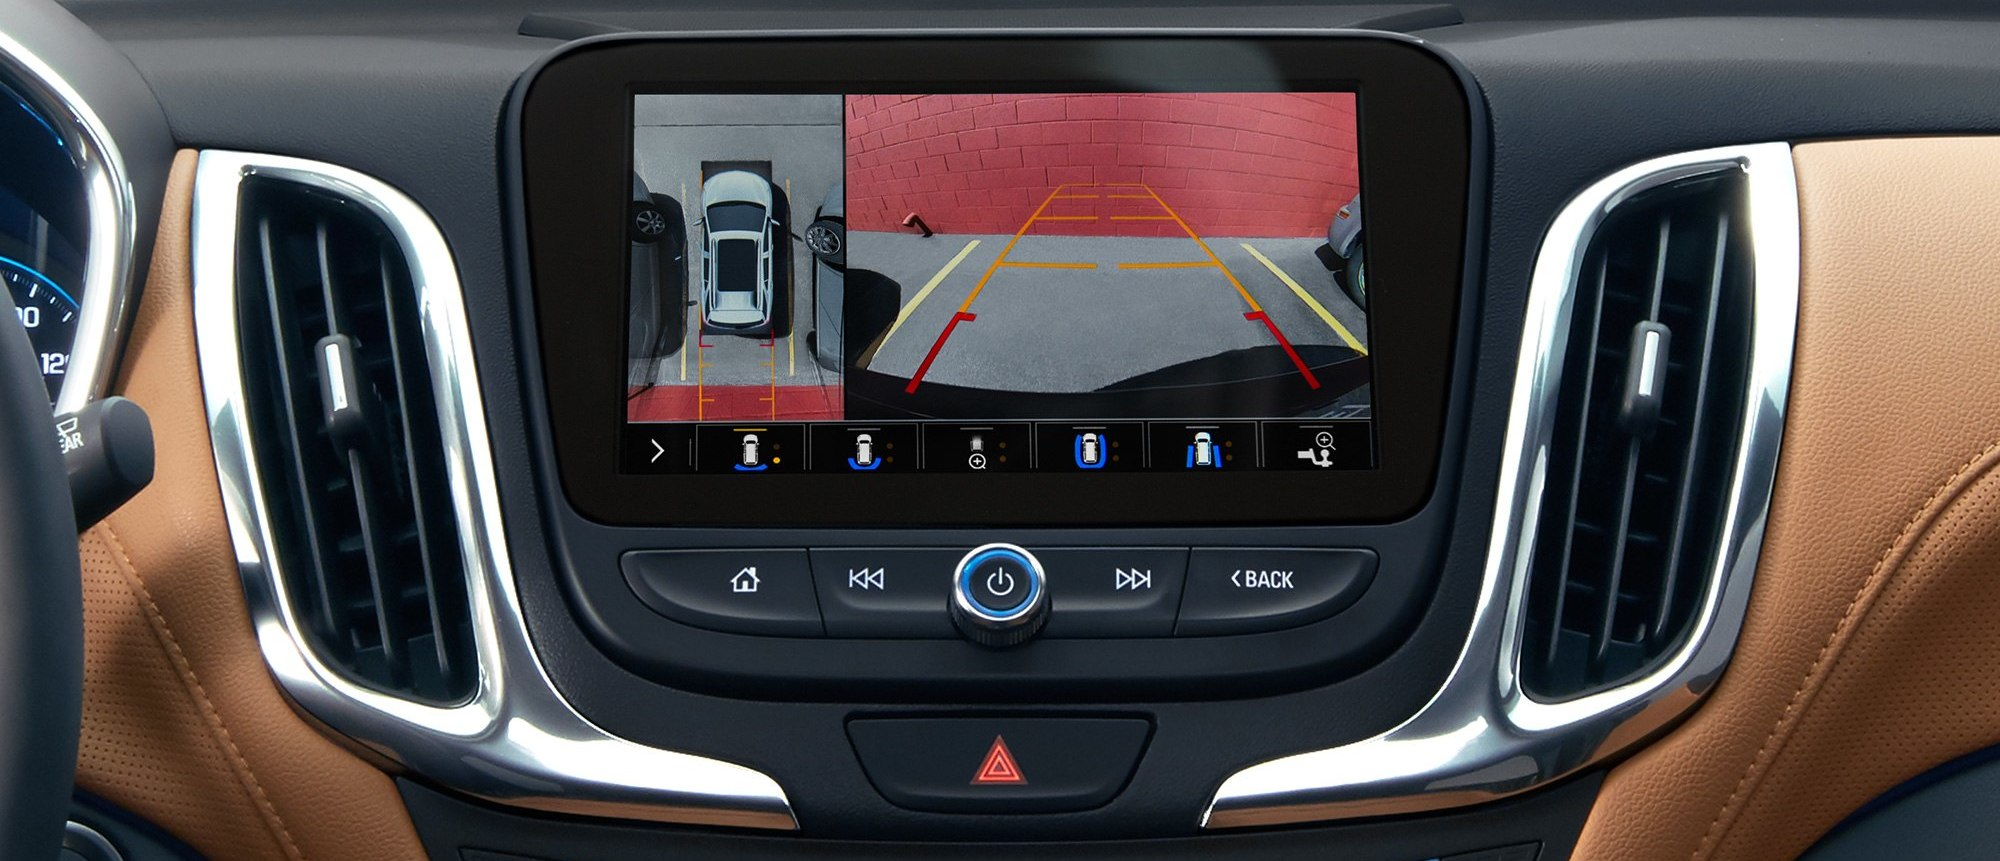 Rear View Camera in the 2020 Chevrolet Equinox